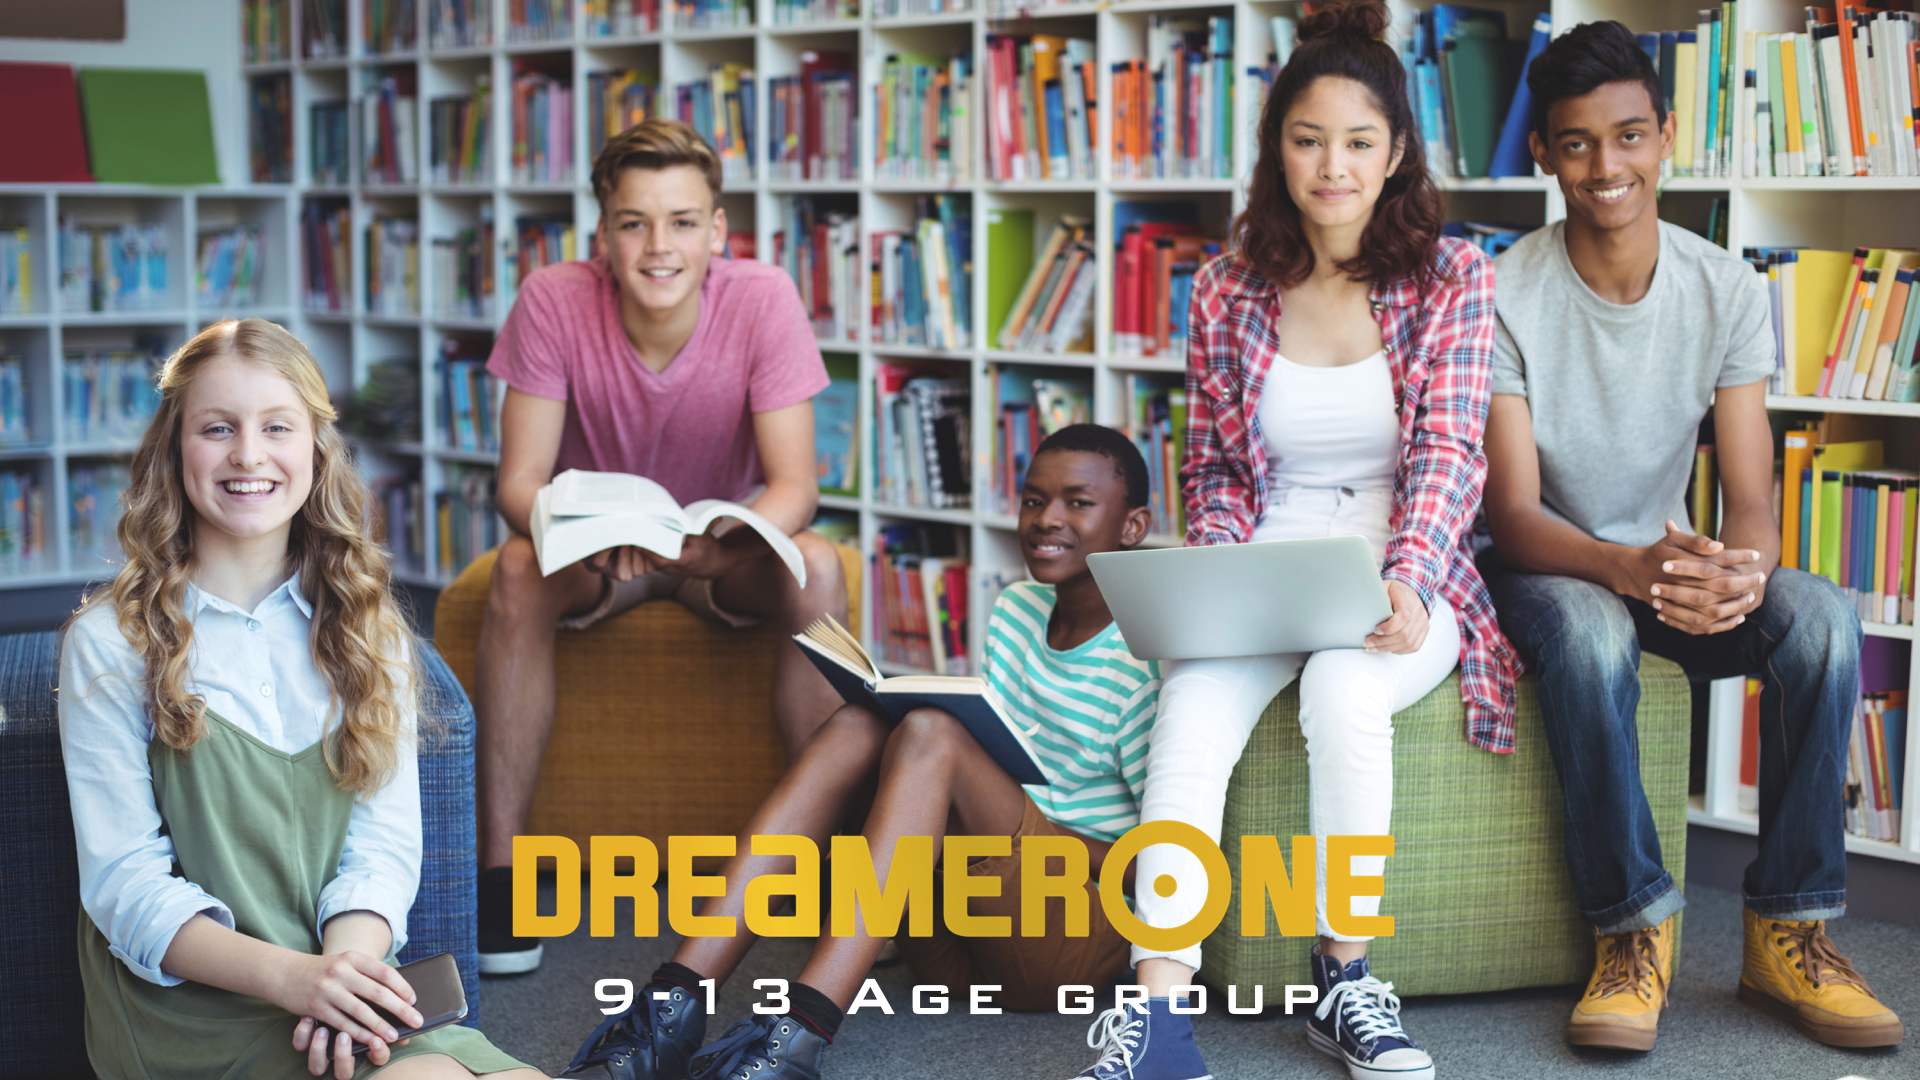 Banner DreamerOne Online Training 9-13 age group